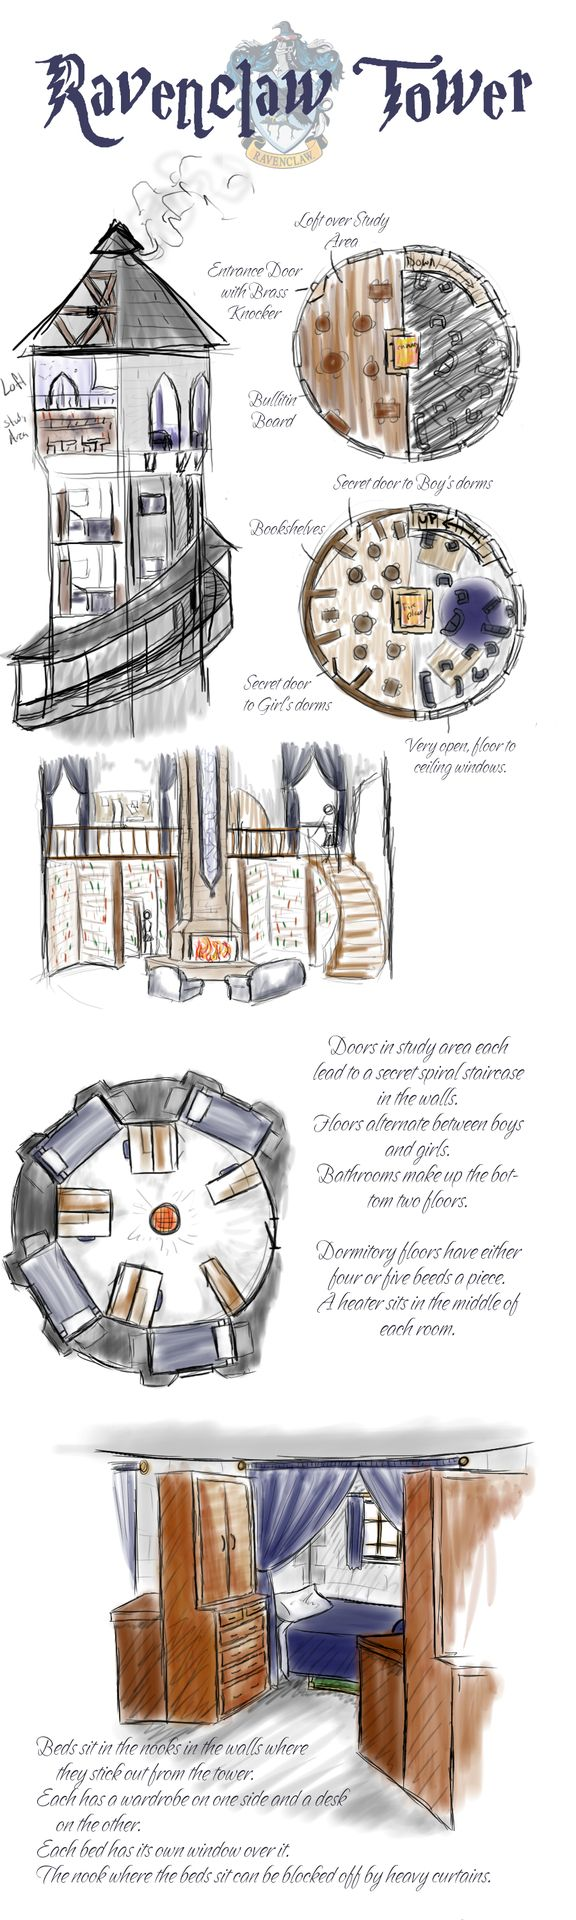 Yes!..Exactly how I envisioned it too. <3's so much #Nerd #Ravenclaw #Dorms #FanArt